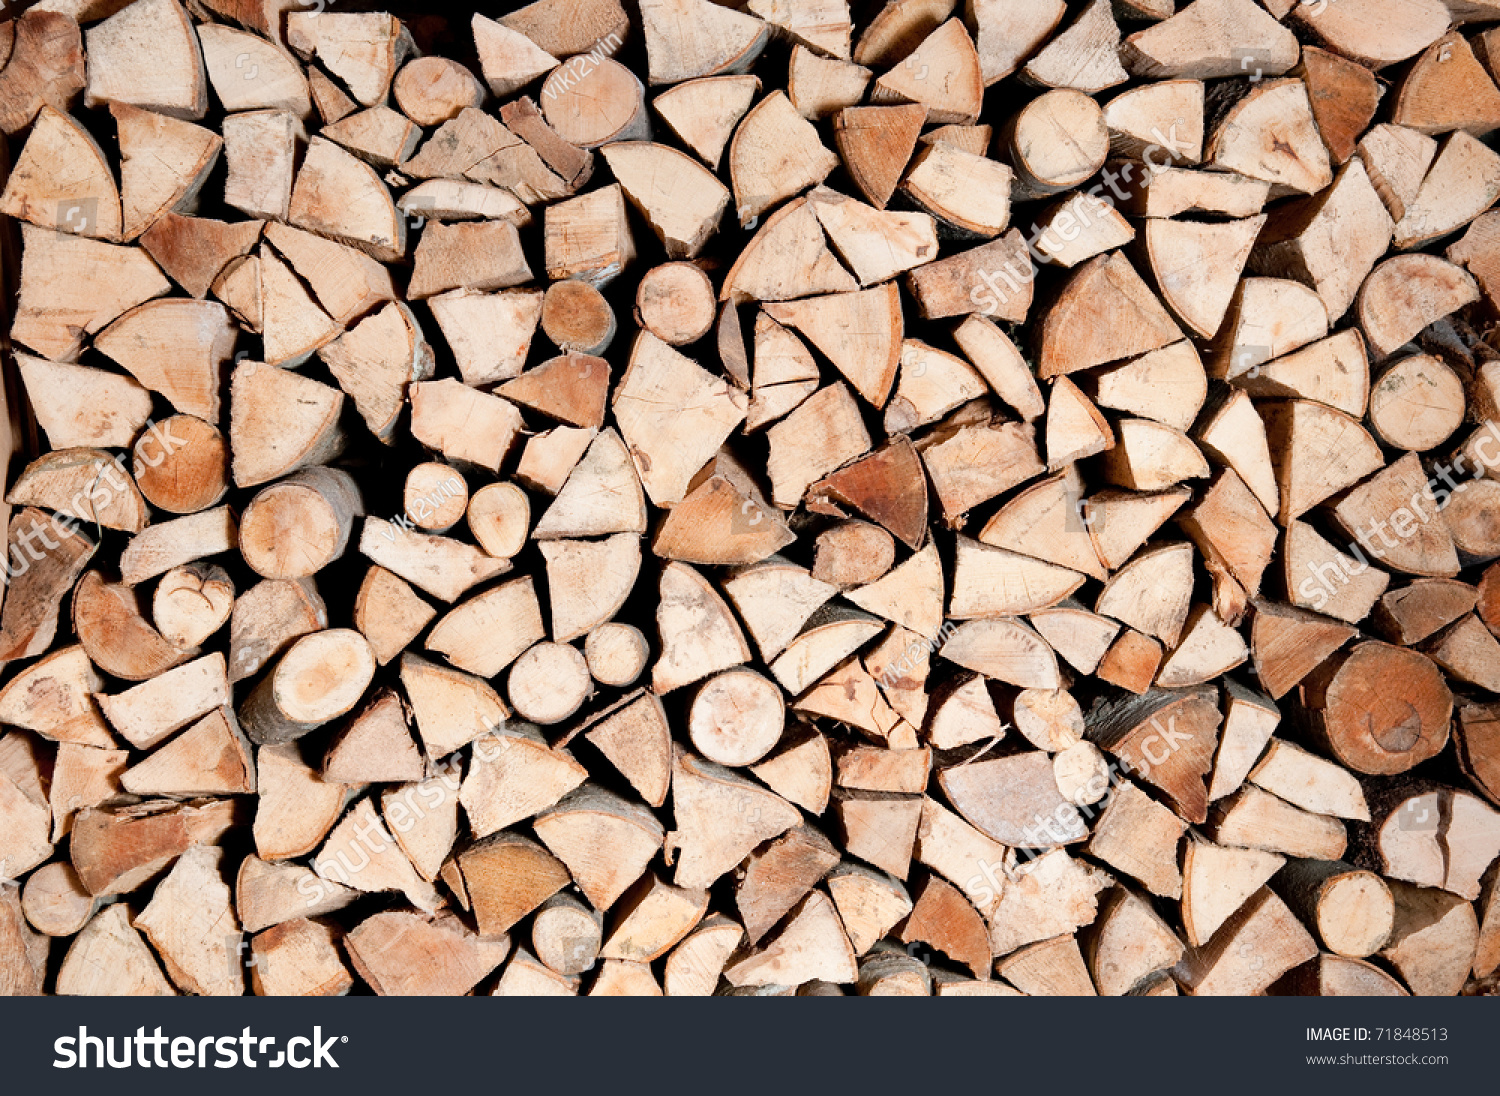 Image Gallery stacked logs